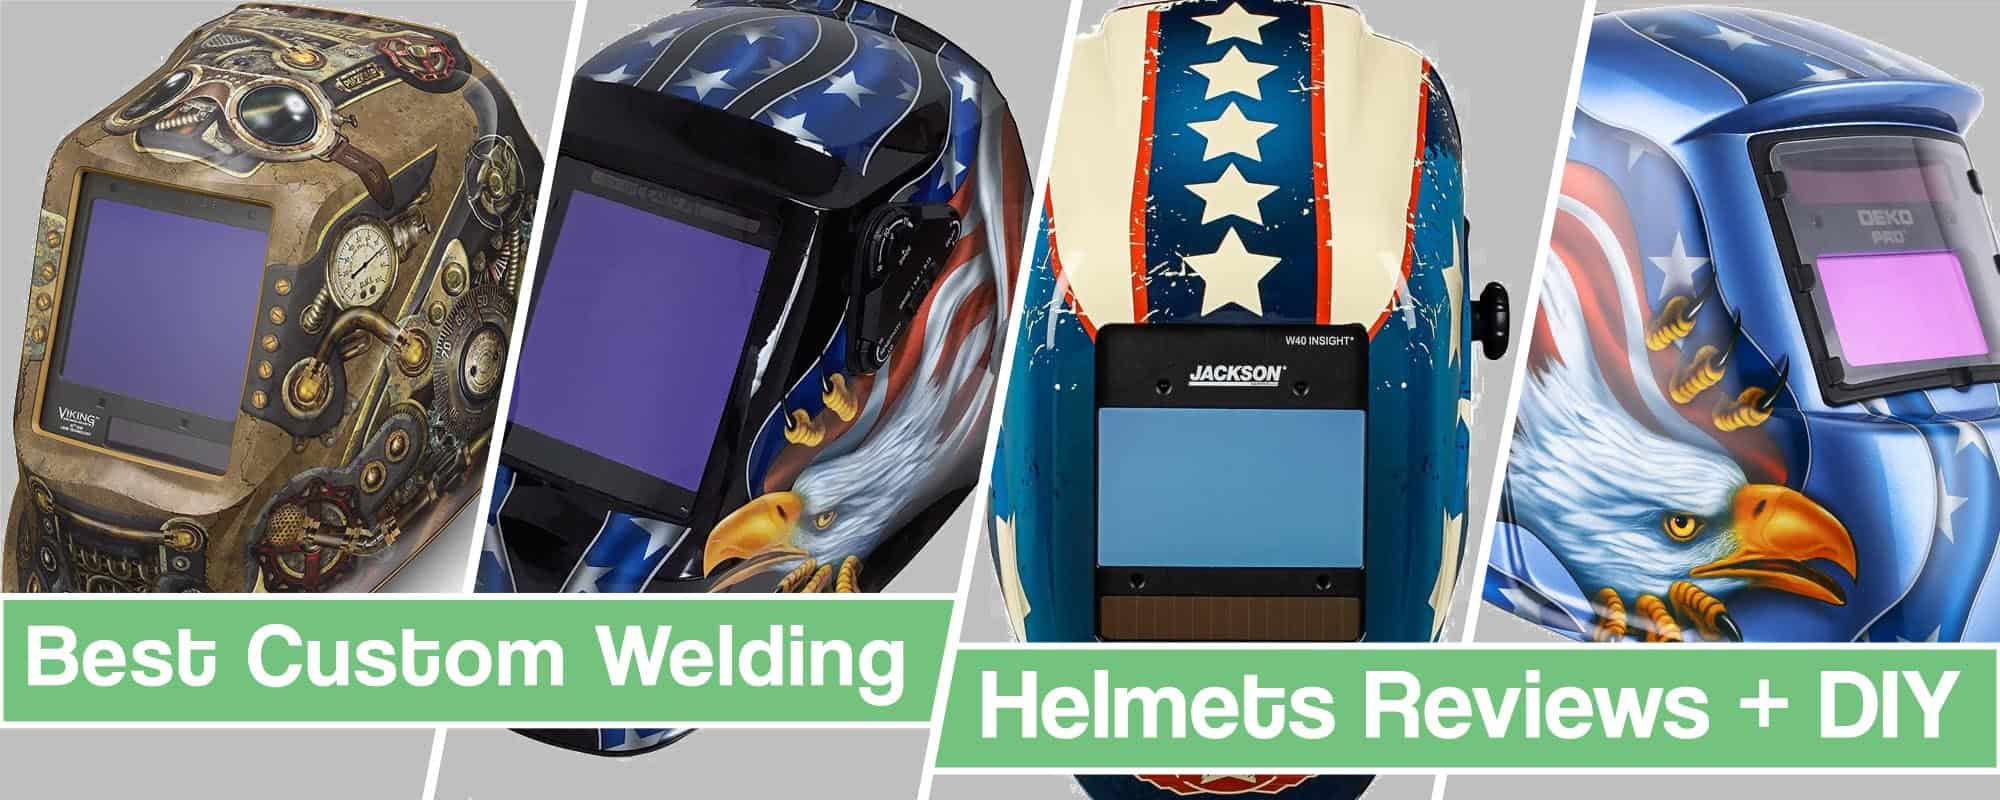 Feature image for Custom Welding Helmets review article